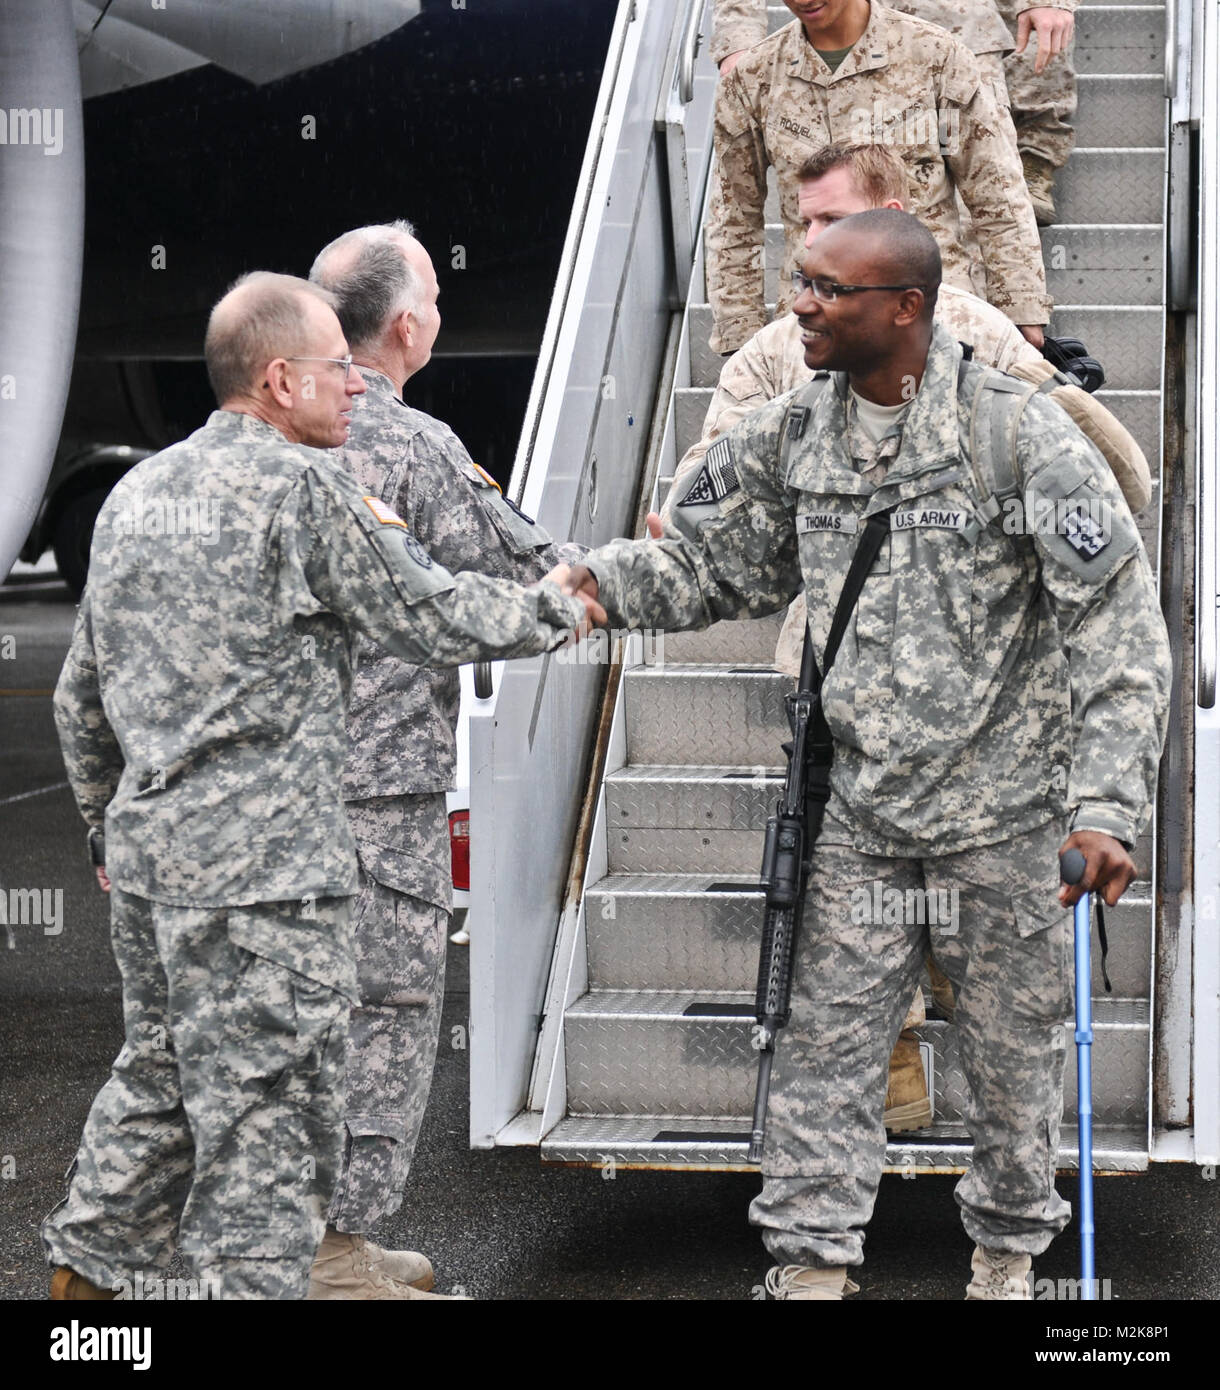 Brig. Gen. John J. Donnelly III greets Sgt. Kenneth Thomas from the 467th Combat Stress Control Detachment home - Stock Image